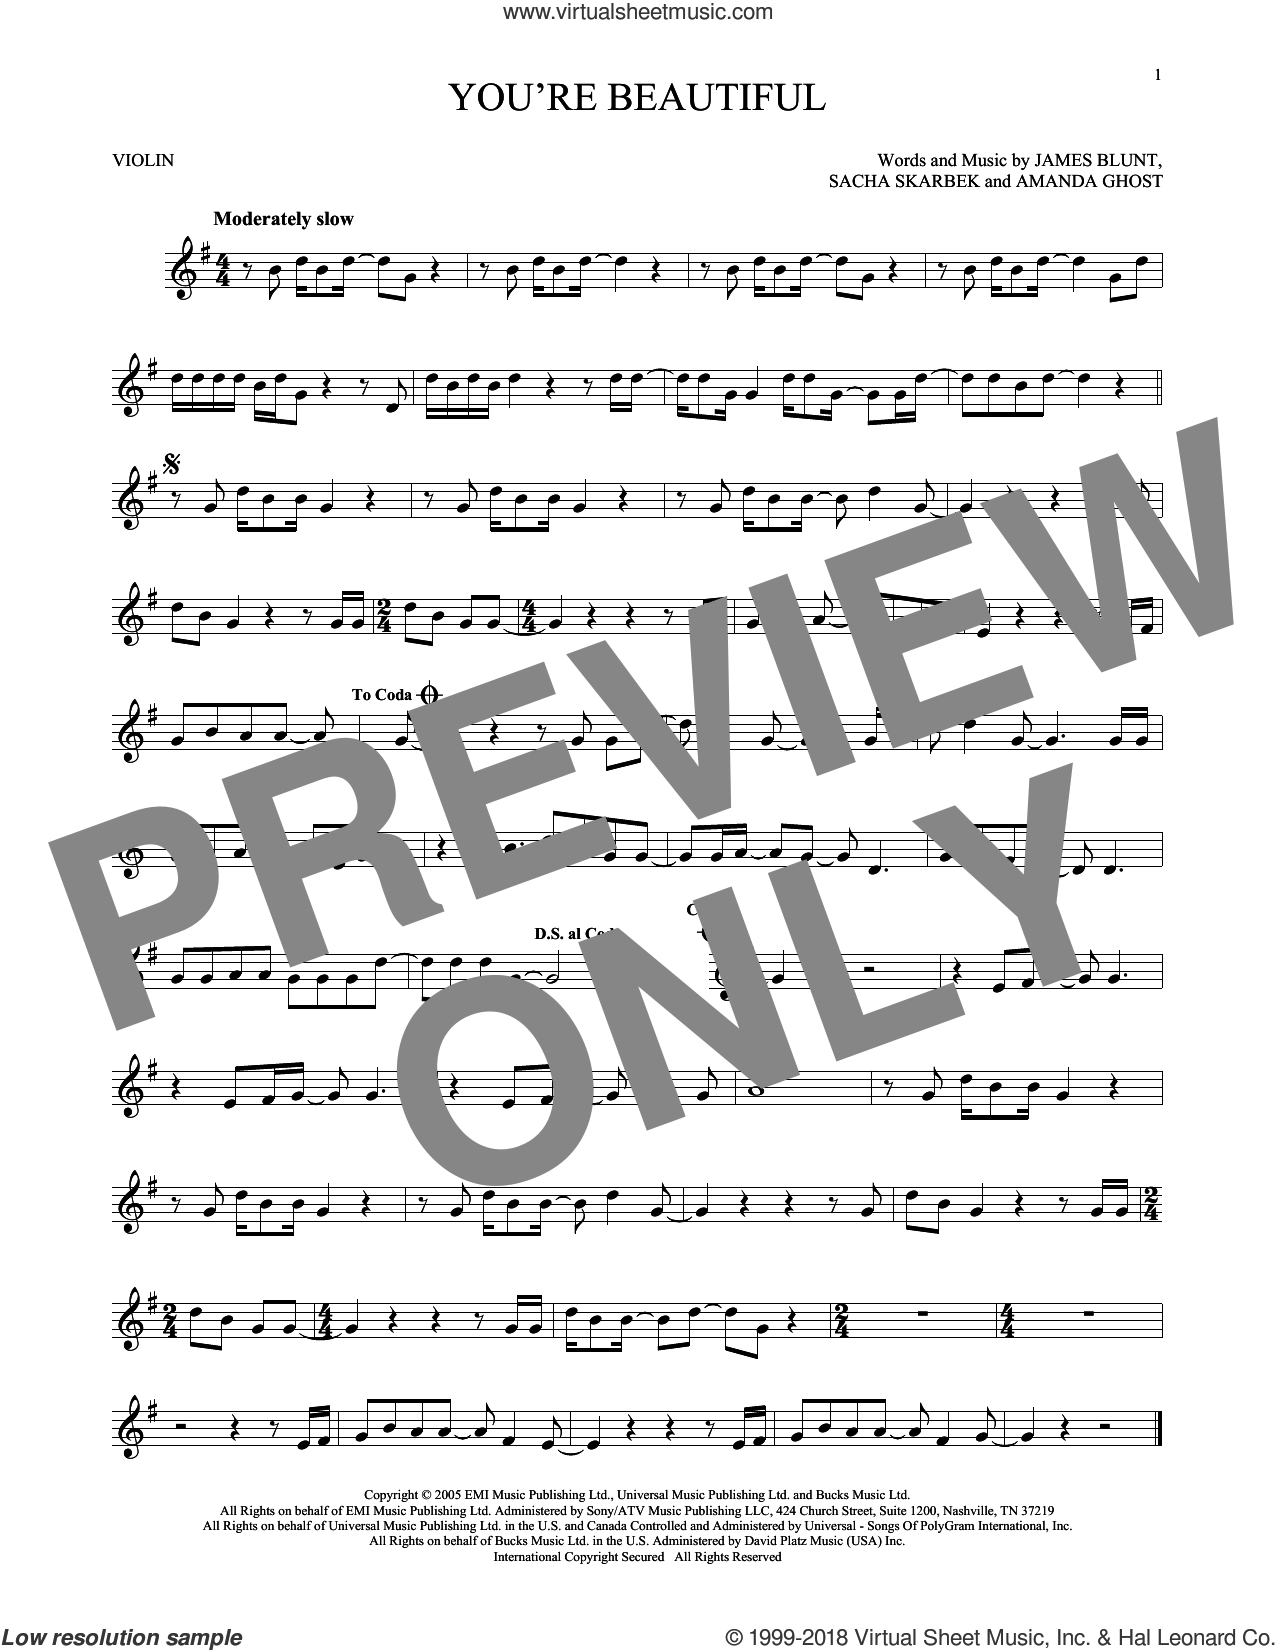 You're Beautiful sheet music for violin solo by James Blunt, Amanda Ghost and Sacha Skarbek, intermediate skill level